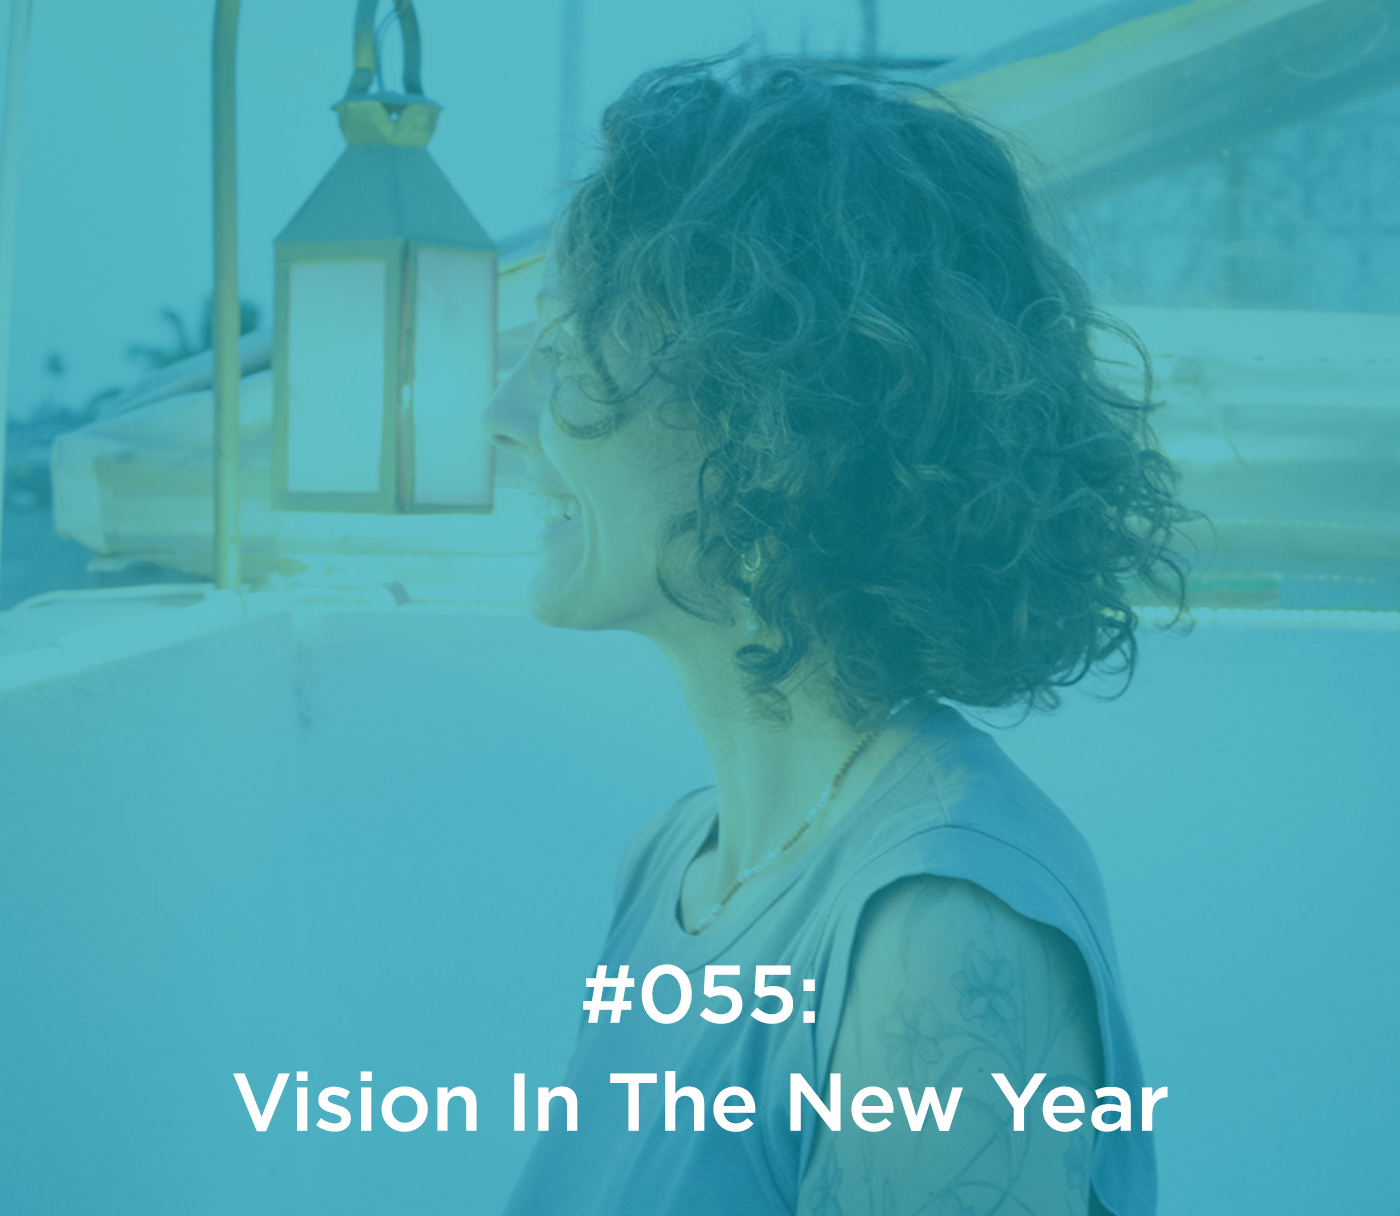 Vision In The New Year